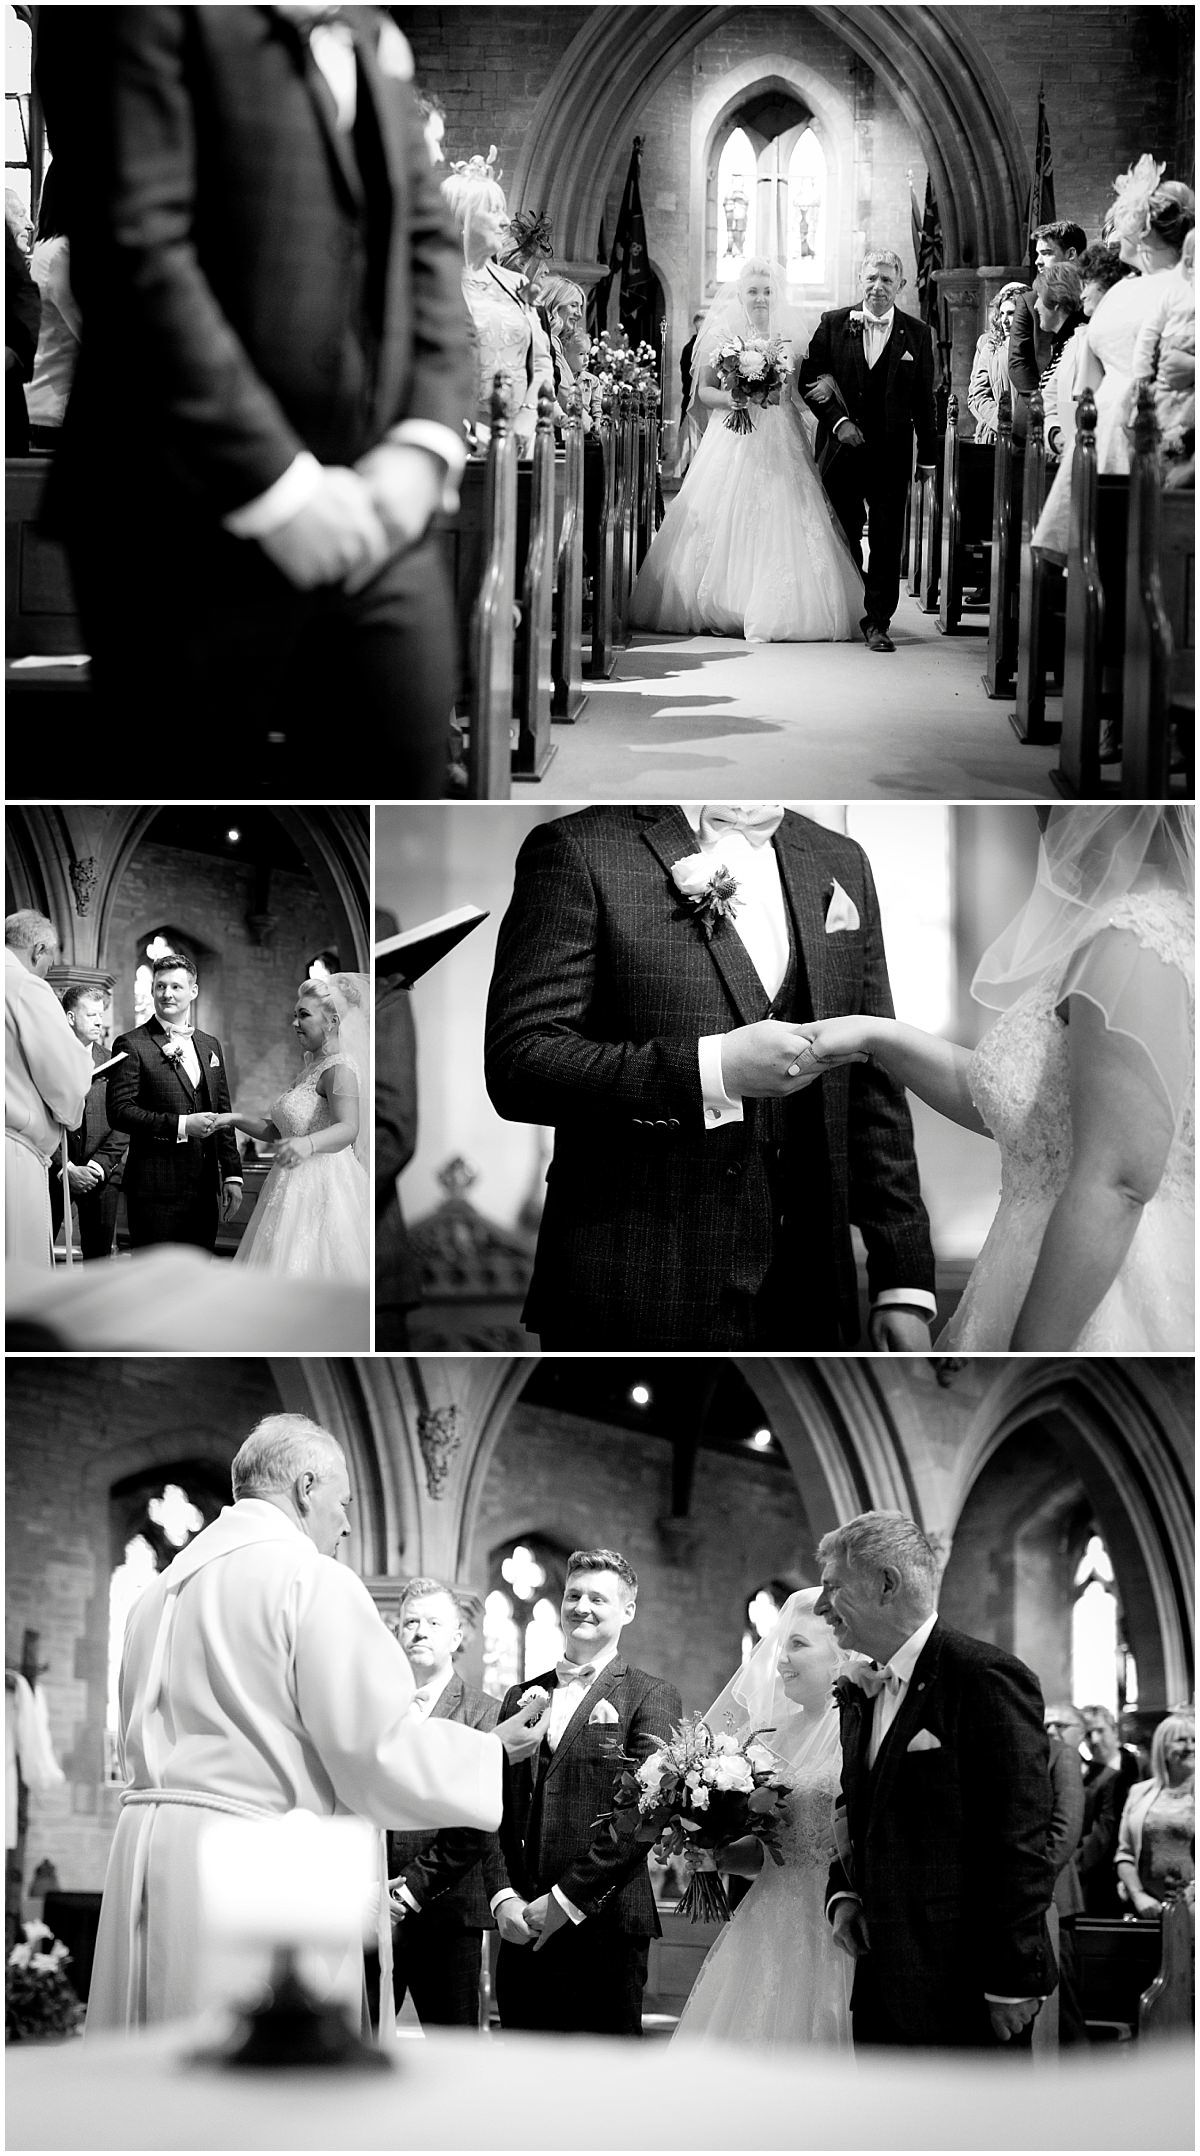 Church ceremony in black and white